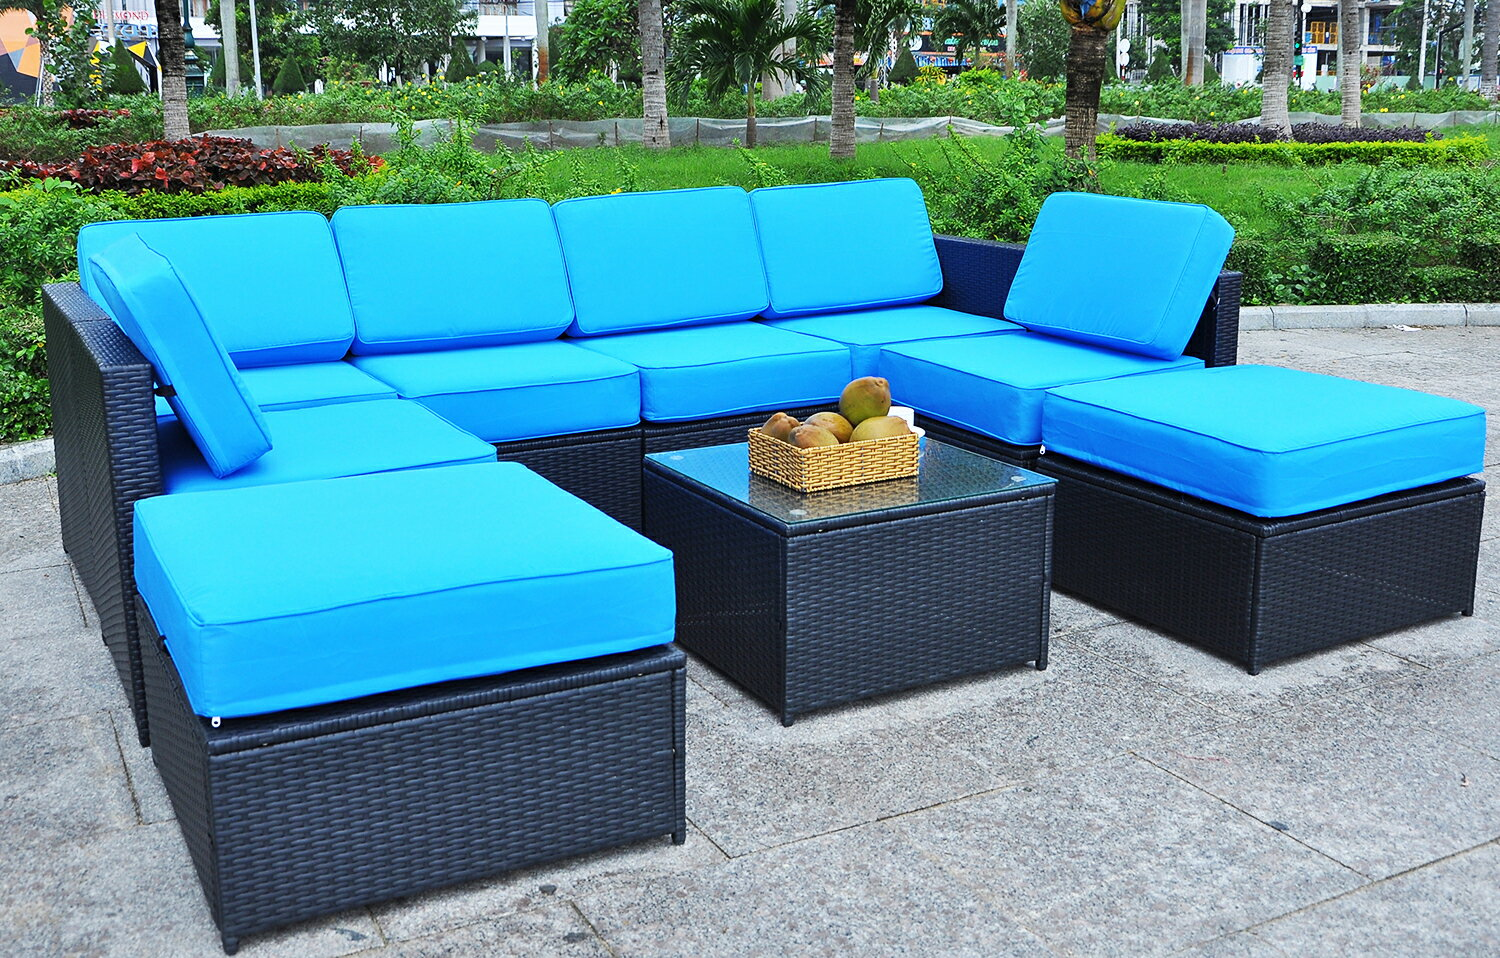 Mcombo Black Wicker Patio Sofa Steel Outdoor Furniture Sectional All Weather Light Weight Conversation